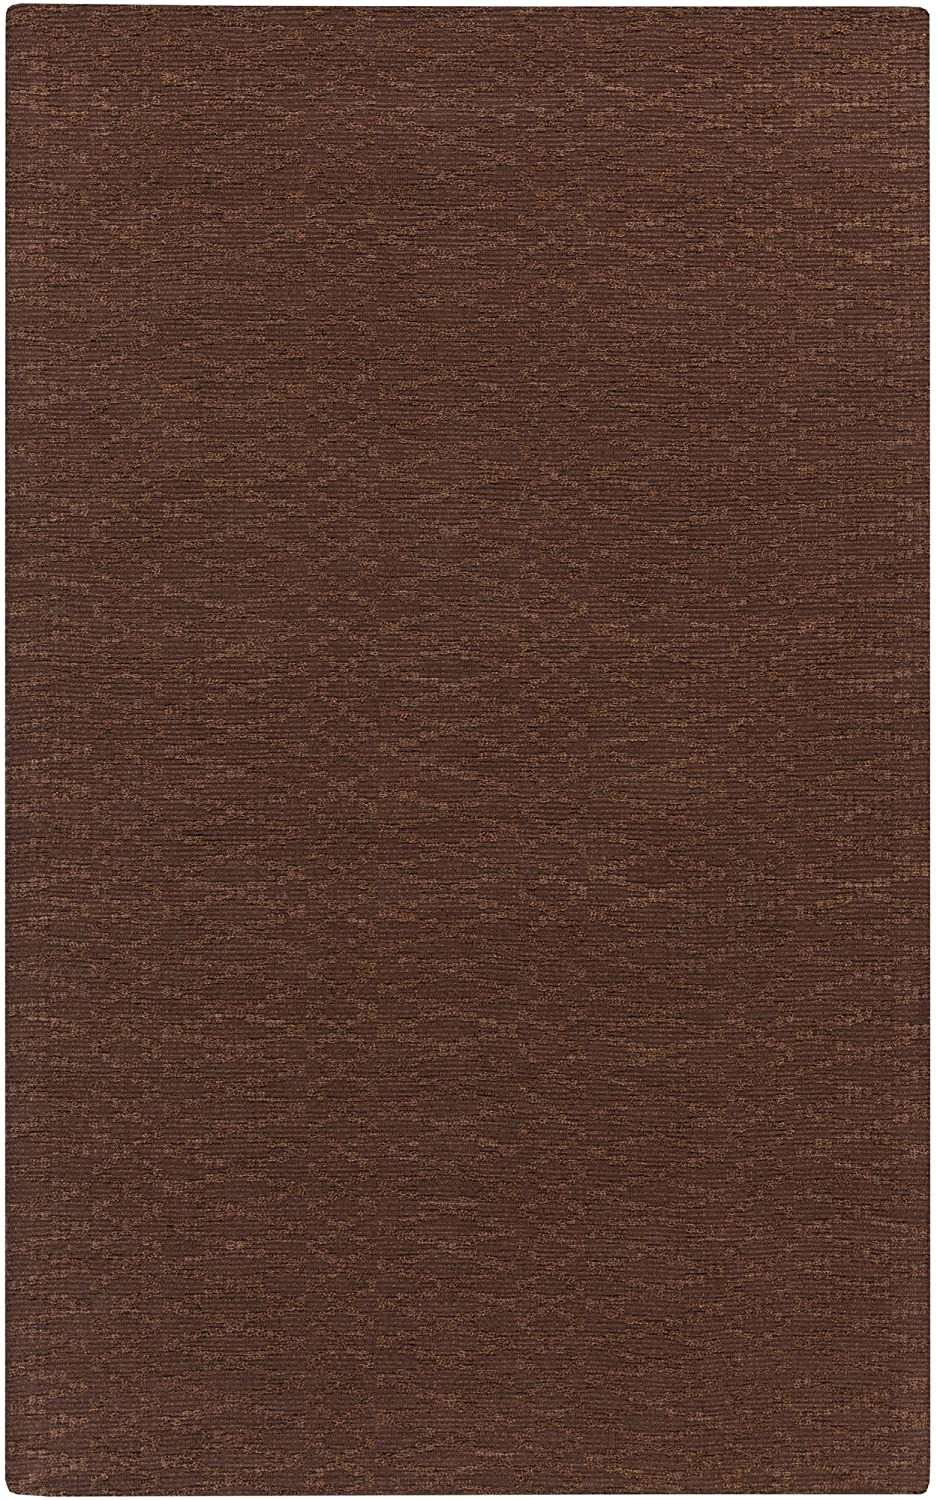 Surya Papilio by Sonata Hand Loomed Textural Accent Rug, 2-Feet by 3-Feet